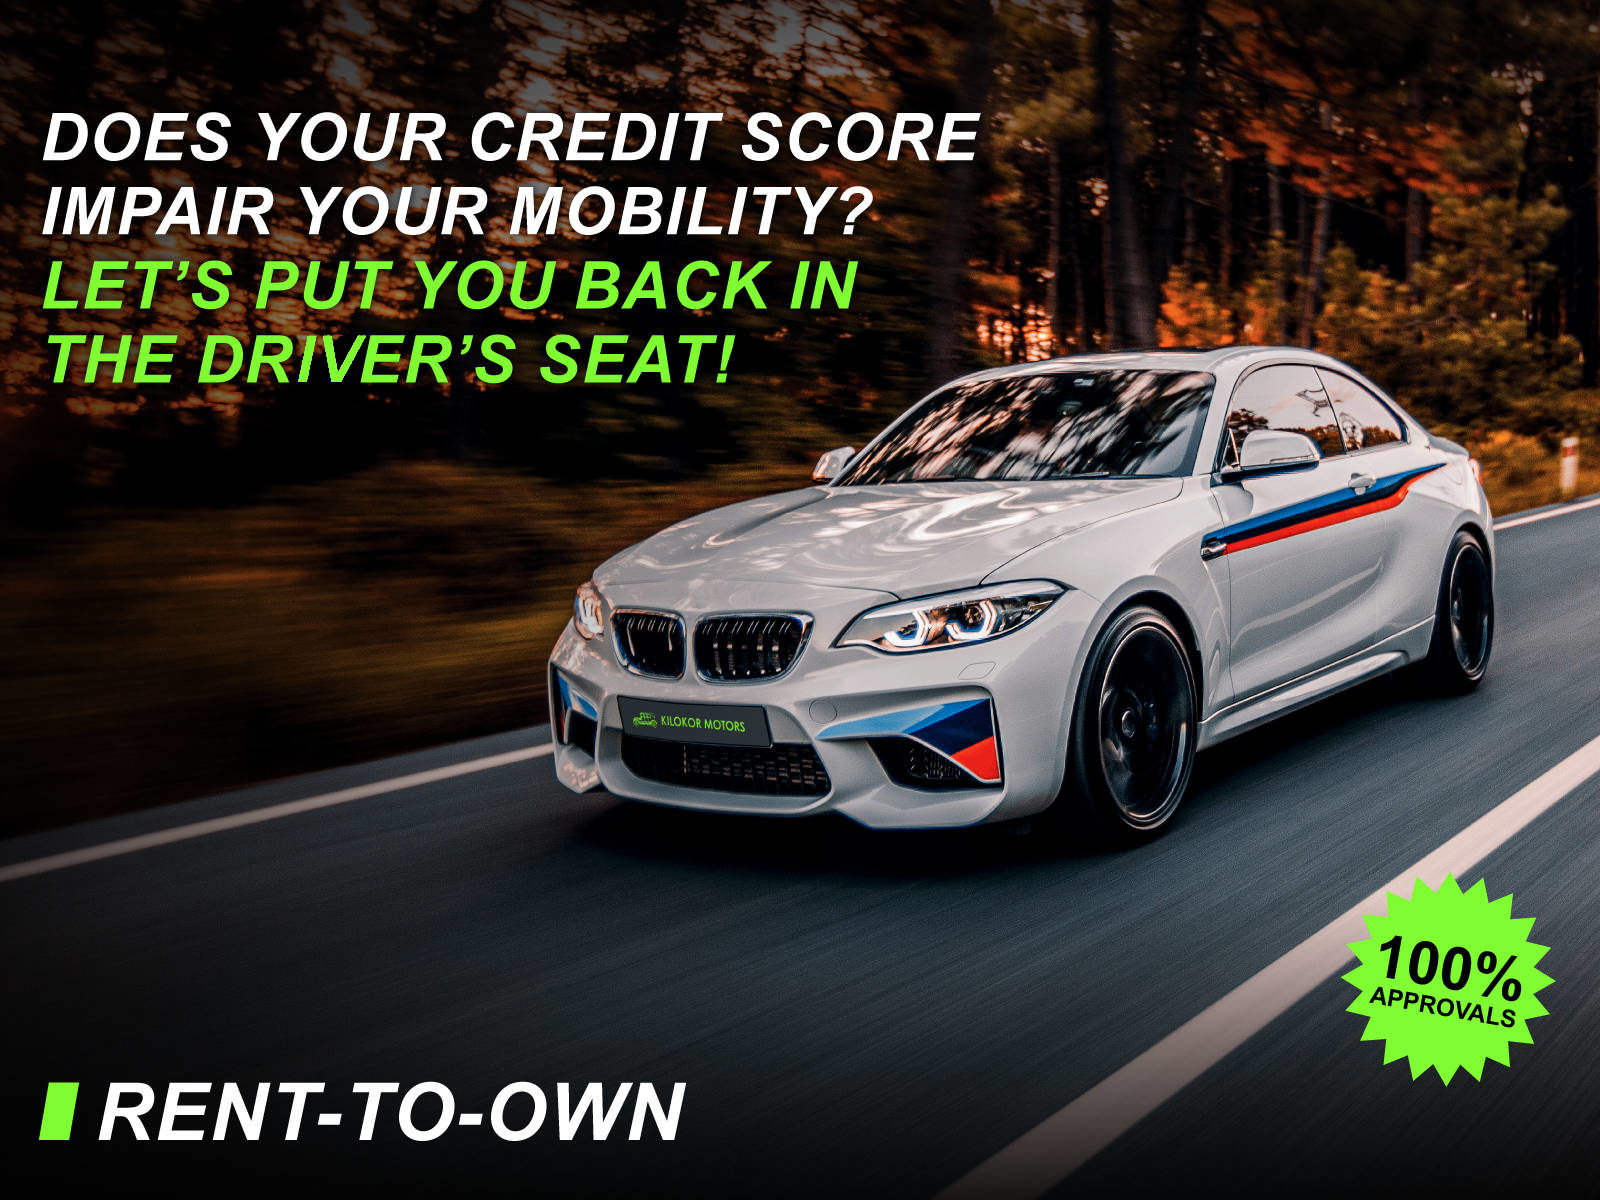 Does you credit score impair your mobility?